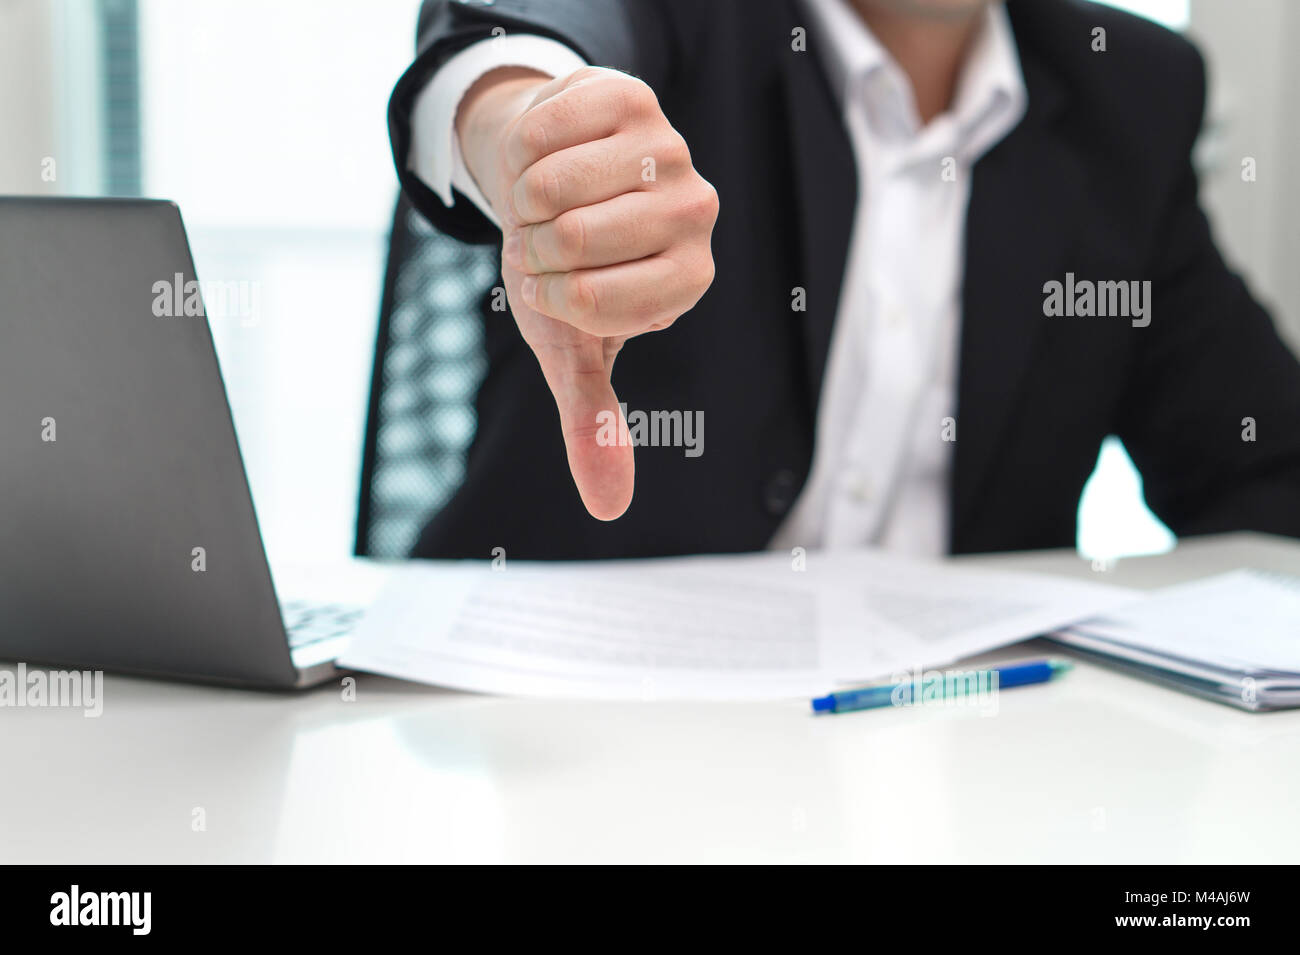 Business man showing thumbs down in office. - Stock Image